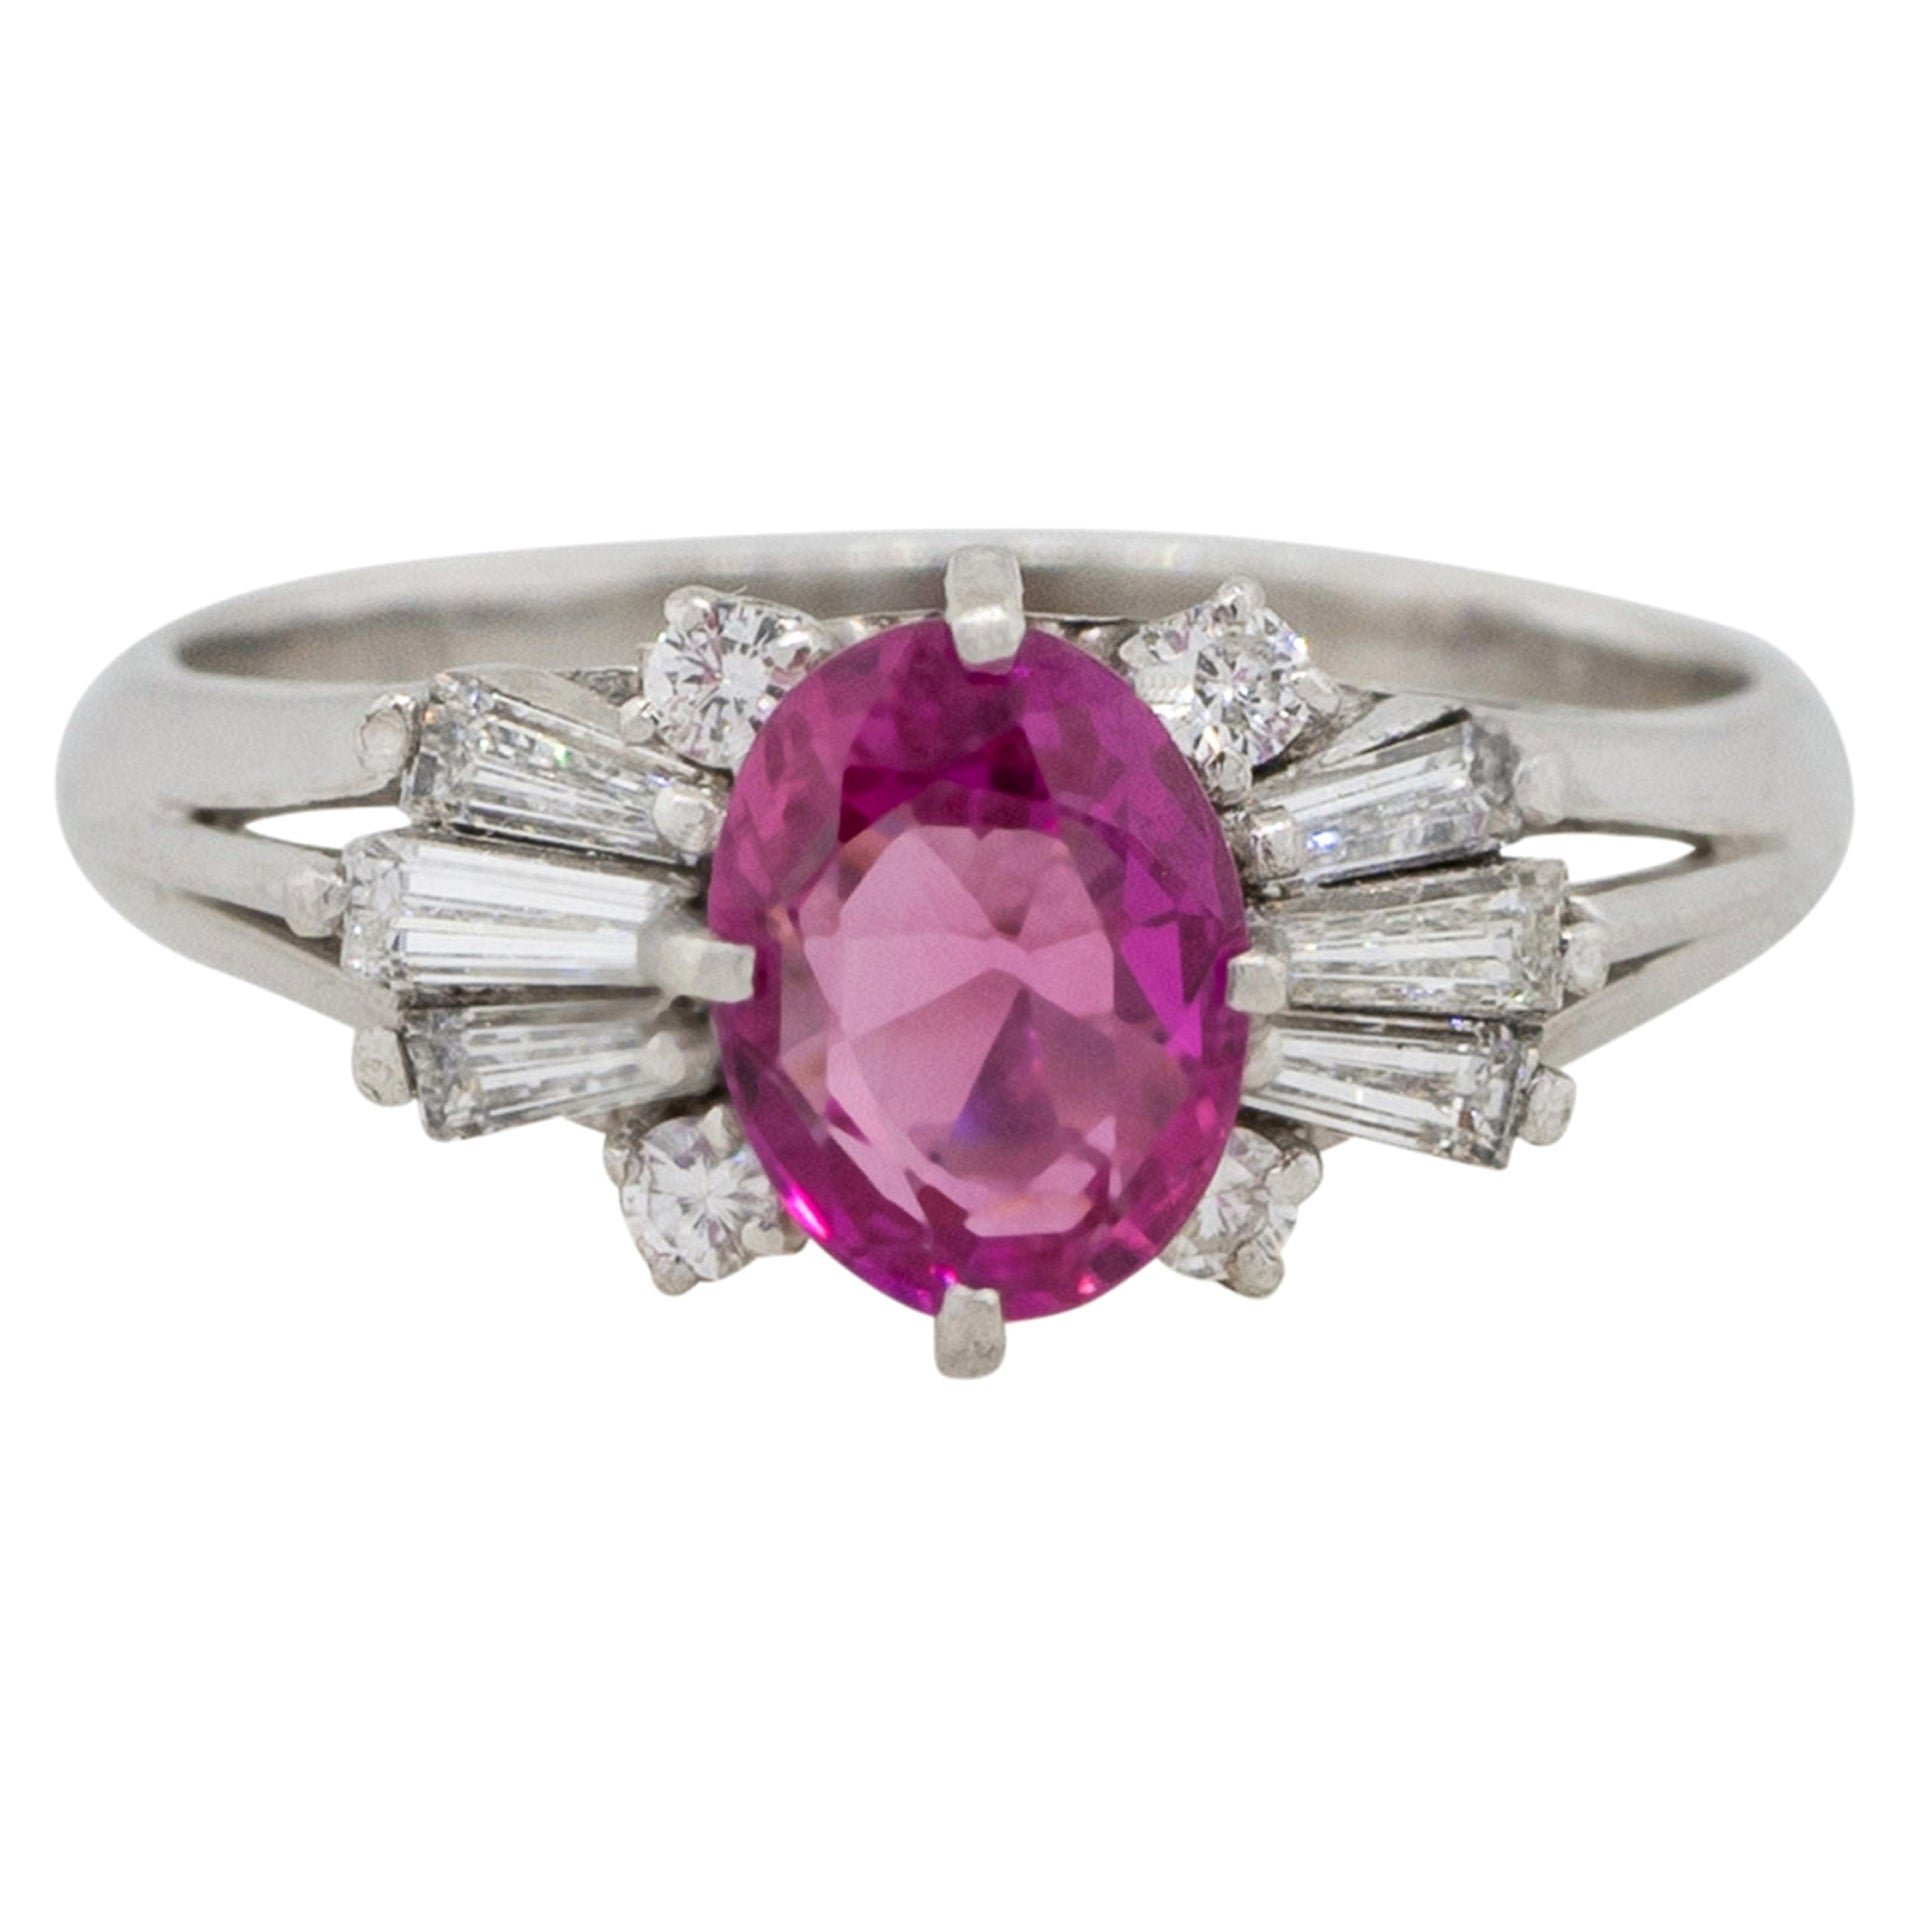 1.10 Carat Oval Cut Ruby Center Diamond Cocktail Ring Platinum in Stock